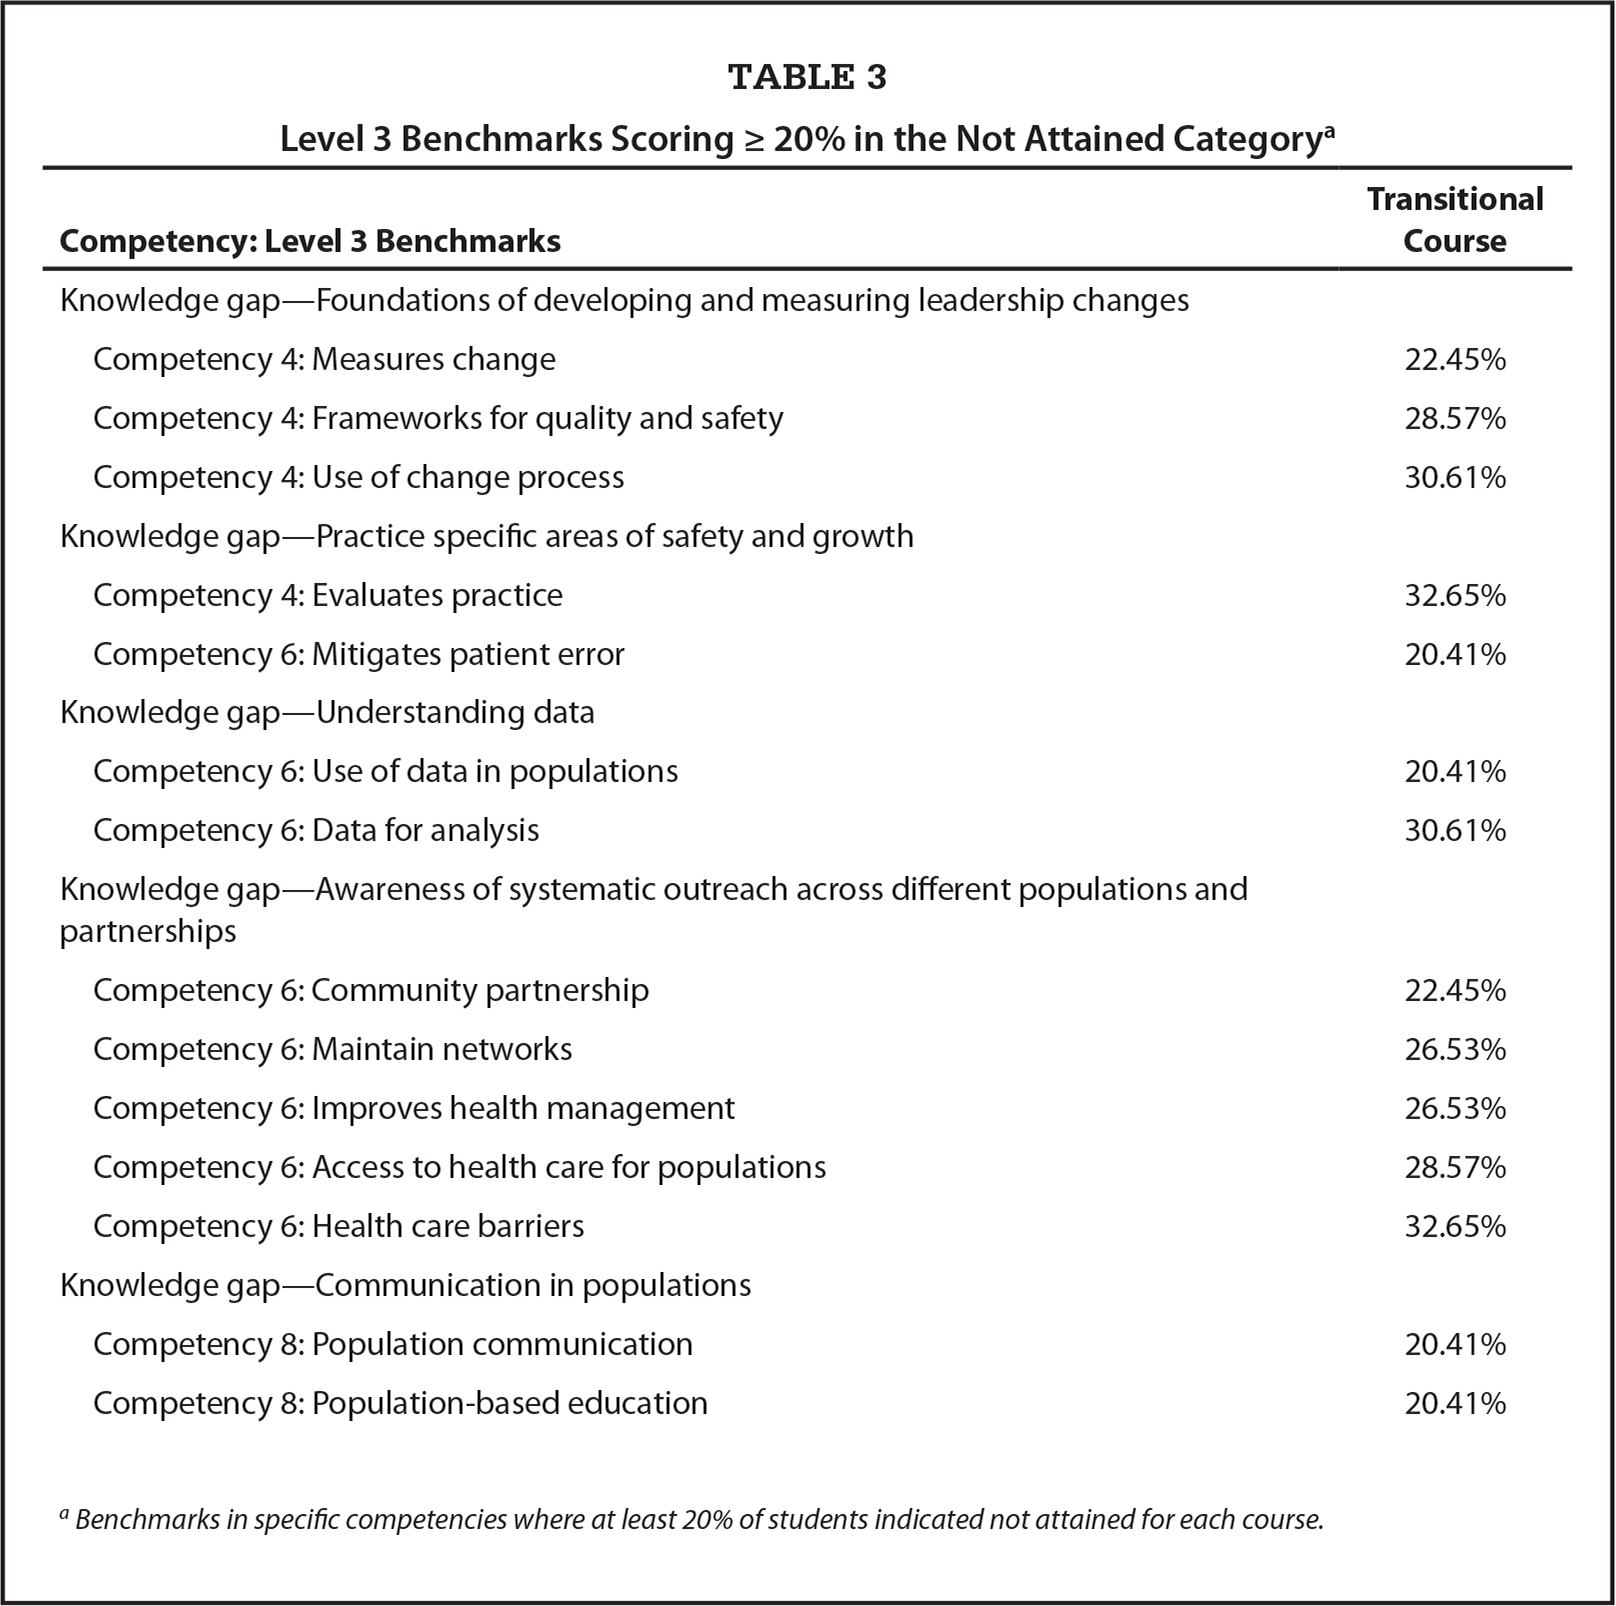 Level 3 Benchmarks Scoring ≥ 20% in the Not Attained Categorya